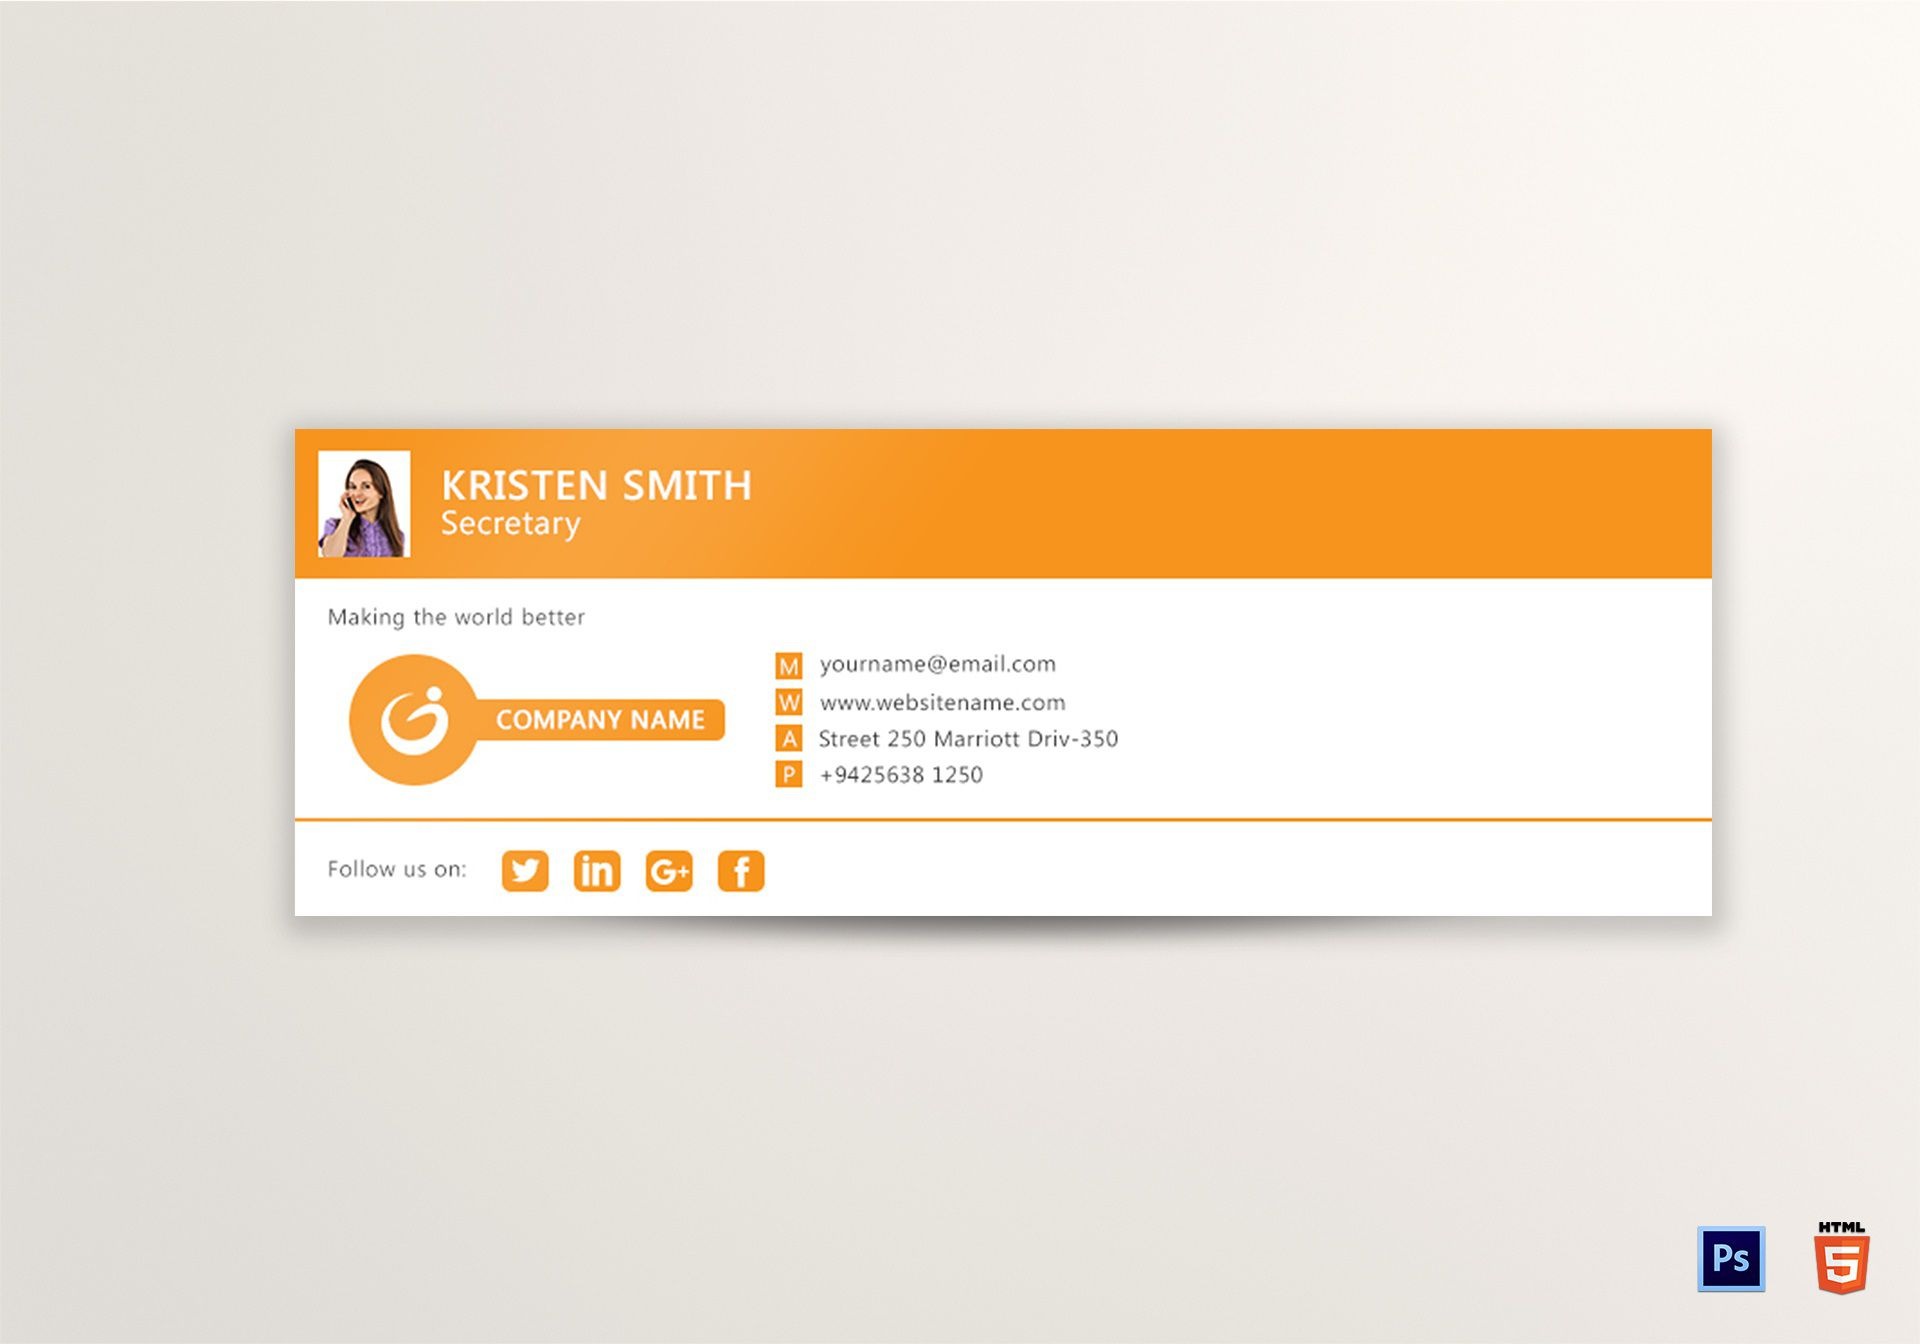 010 Stunning Email Signature Format For Outlook High Resolution  Example Template MicrosoftFull